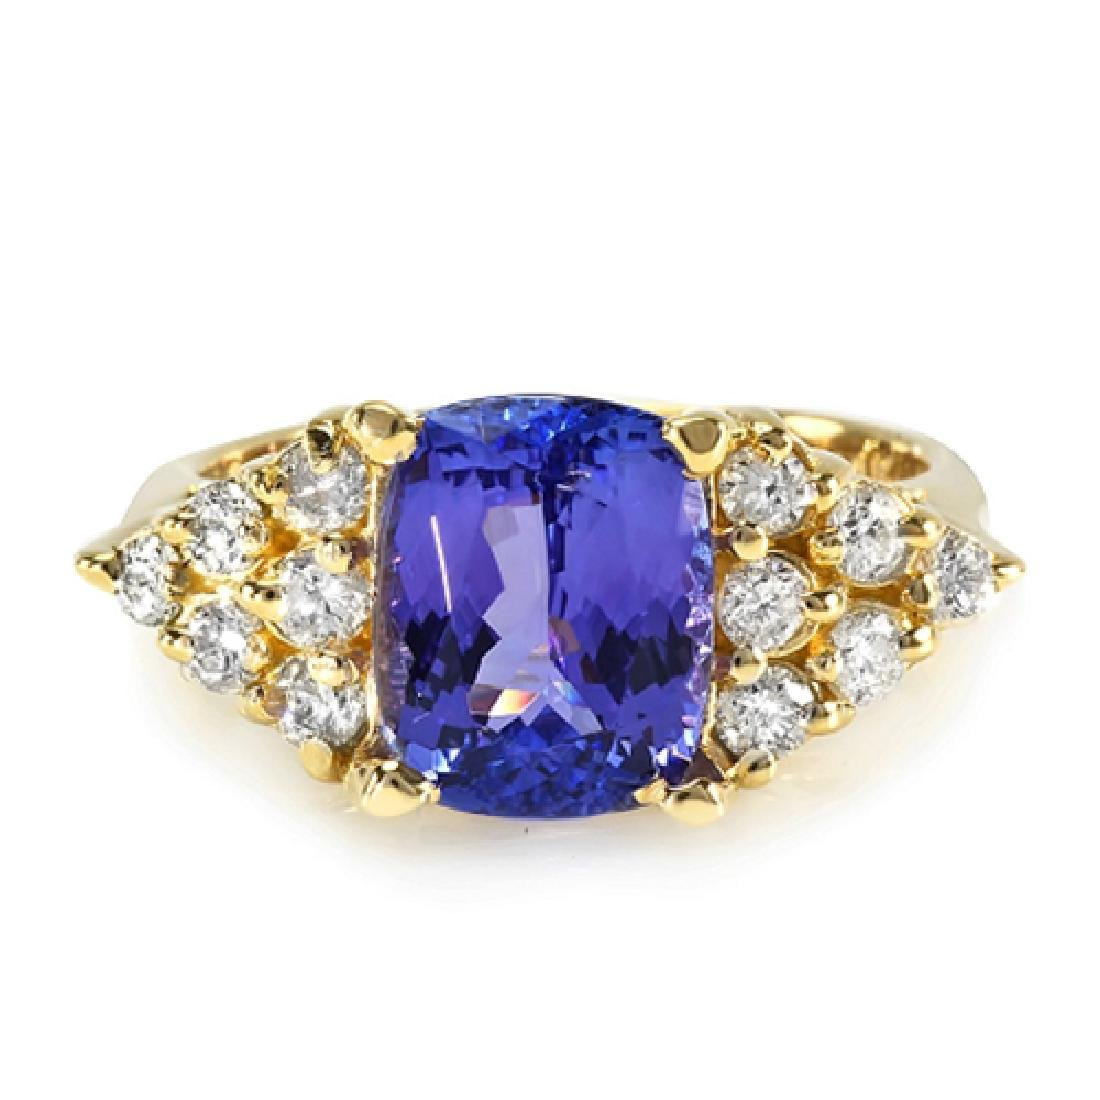 2.70 Carat Natural Tanzanite 18K Solid Yellow Gold